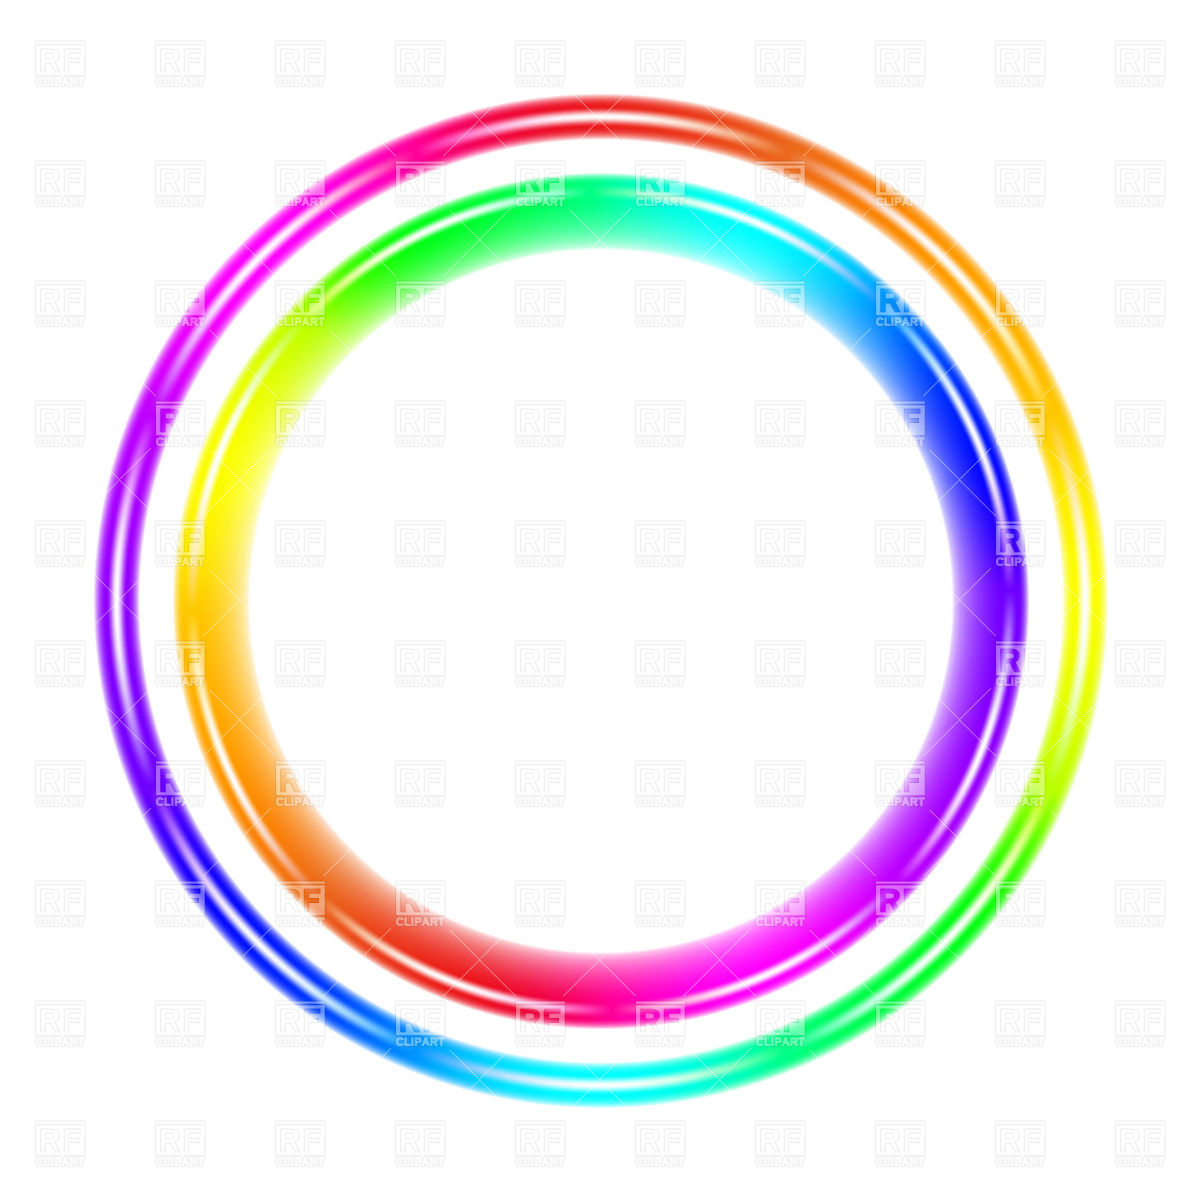 1200x1200 Color Wheel Spectrum Circle Vector Image Vector Artwork Of